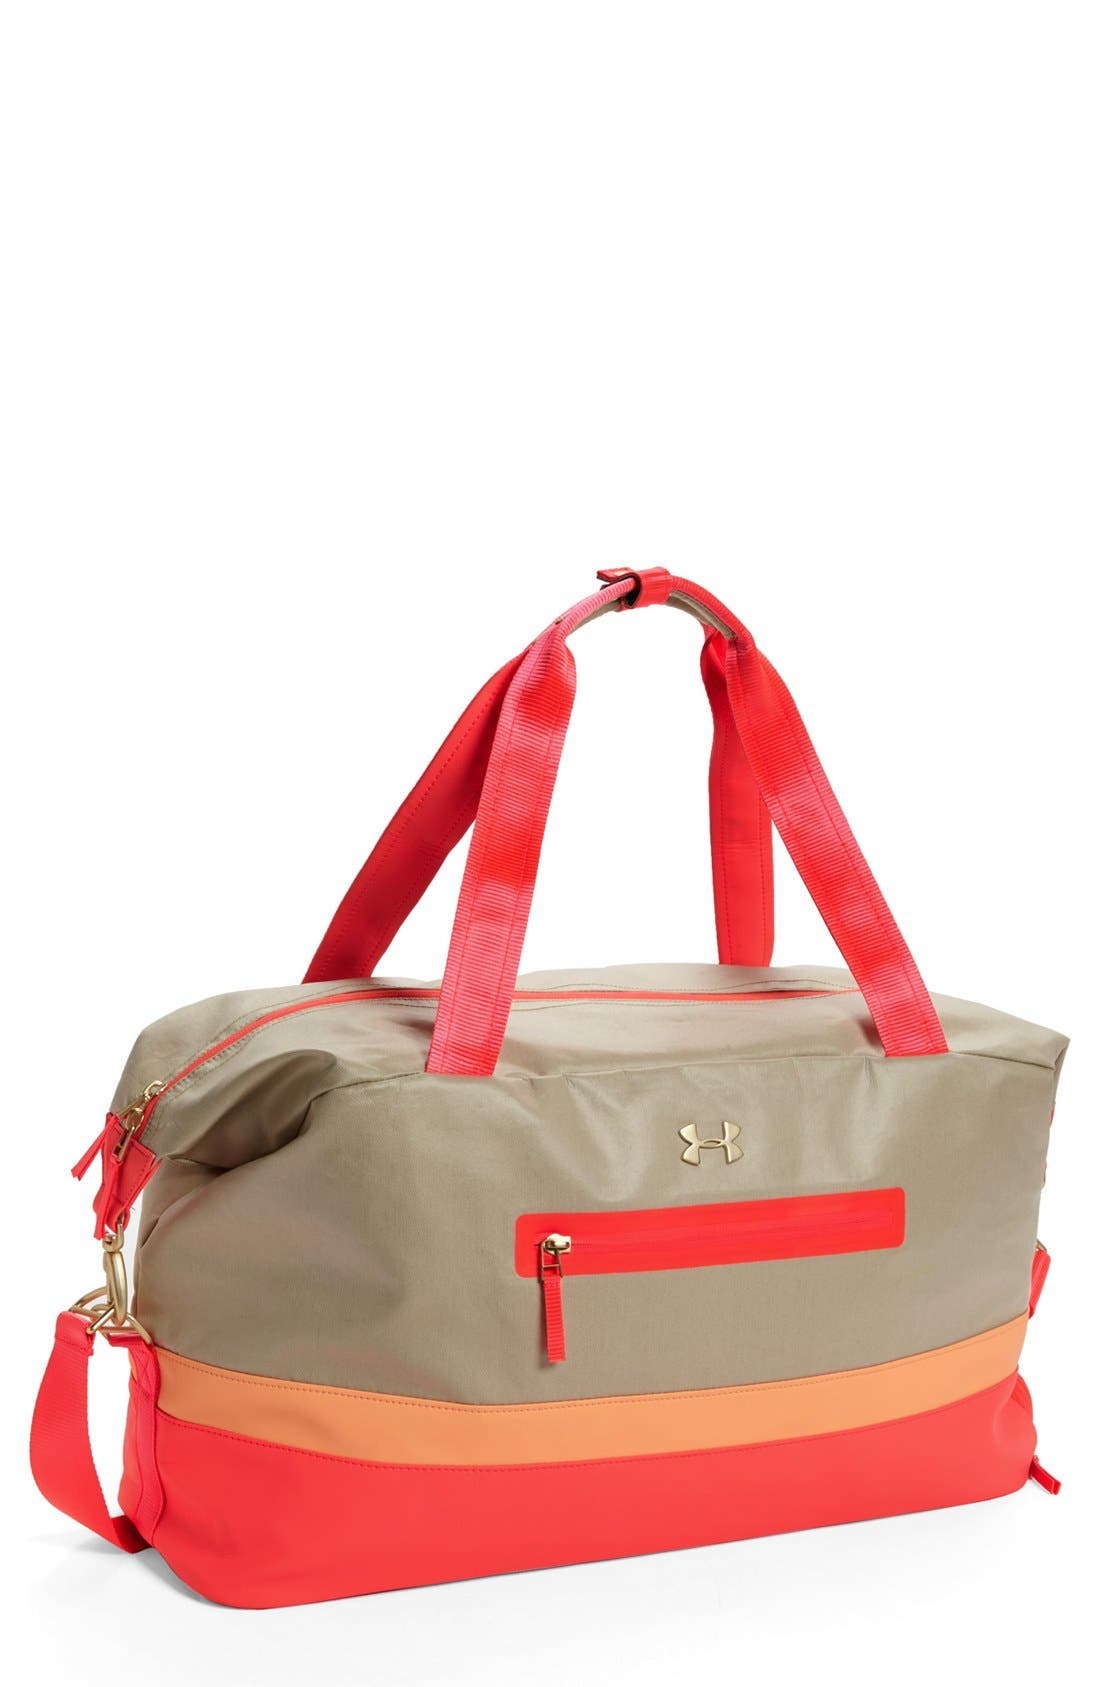 Main Image - Under Armour 'Perfect Flow' Duffel Bag